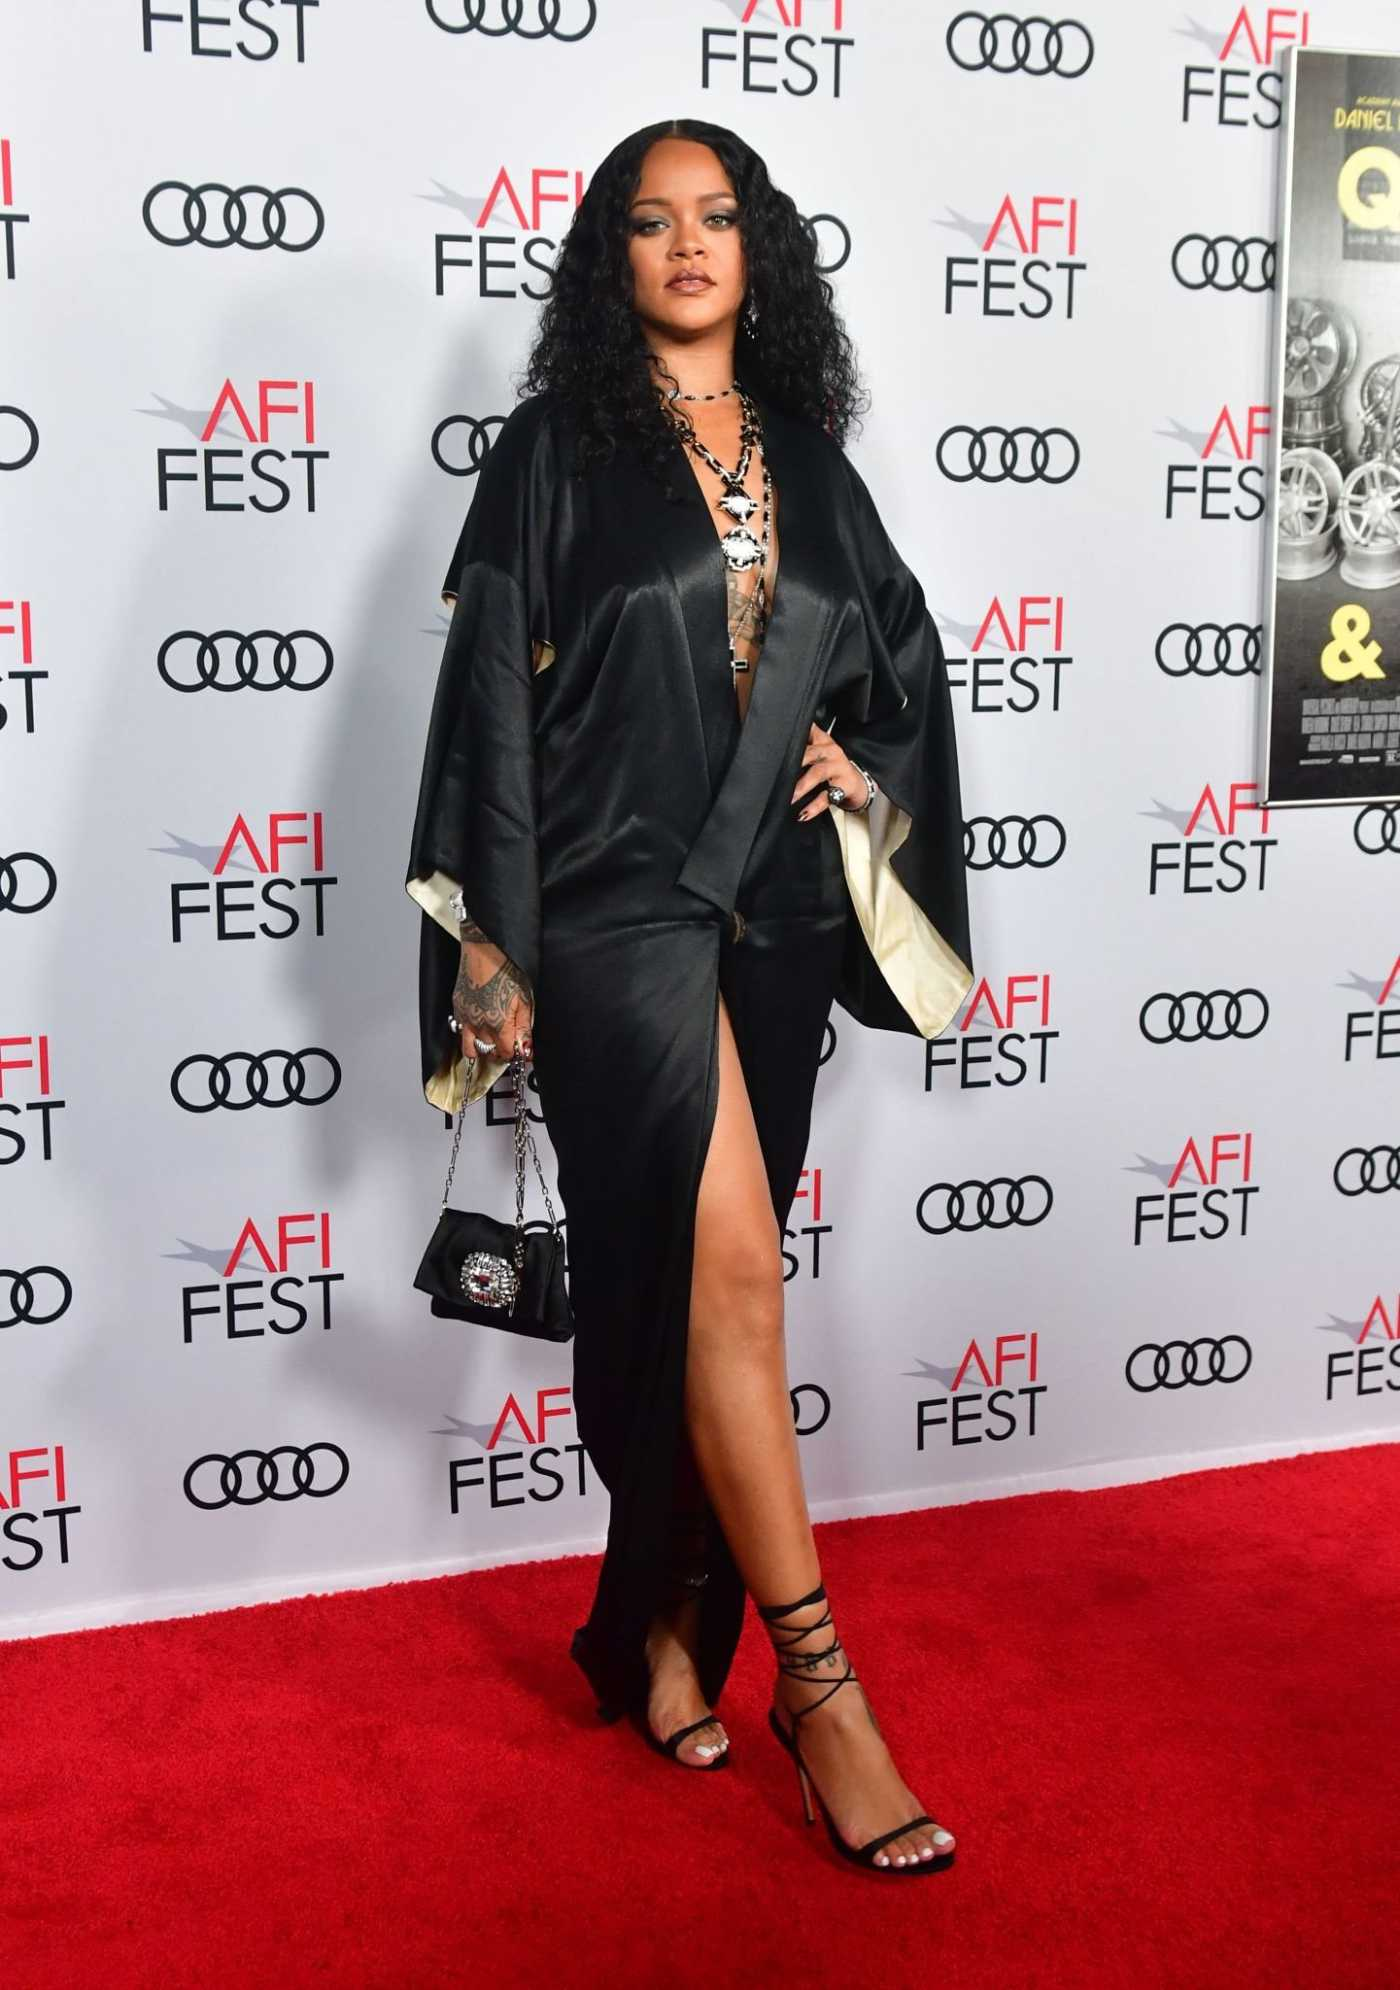 Rihanna Attends the Queen and Slim Premiere at AFI Fest in Hollywood 11/14/2019